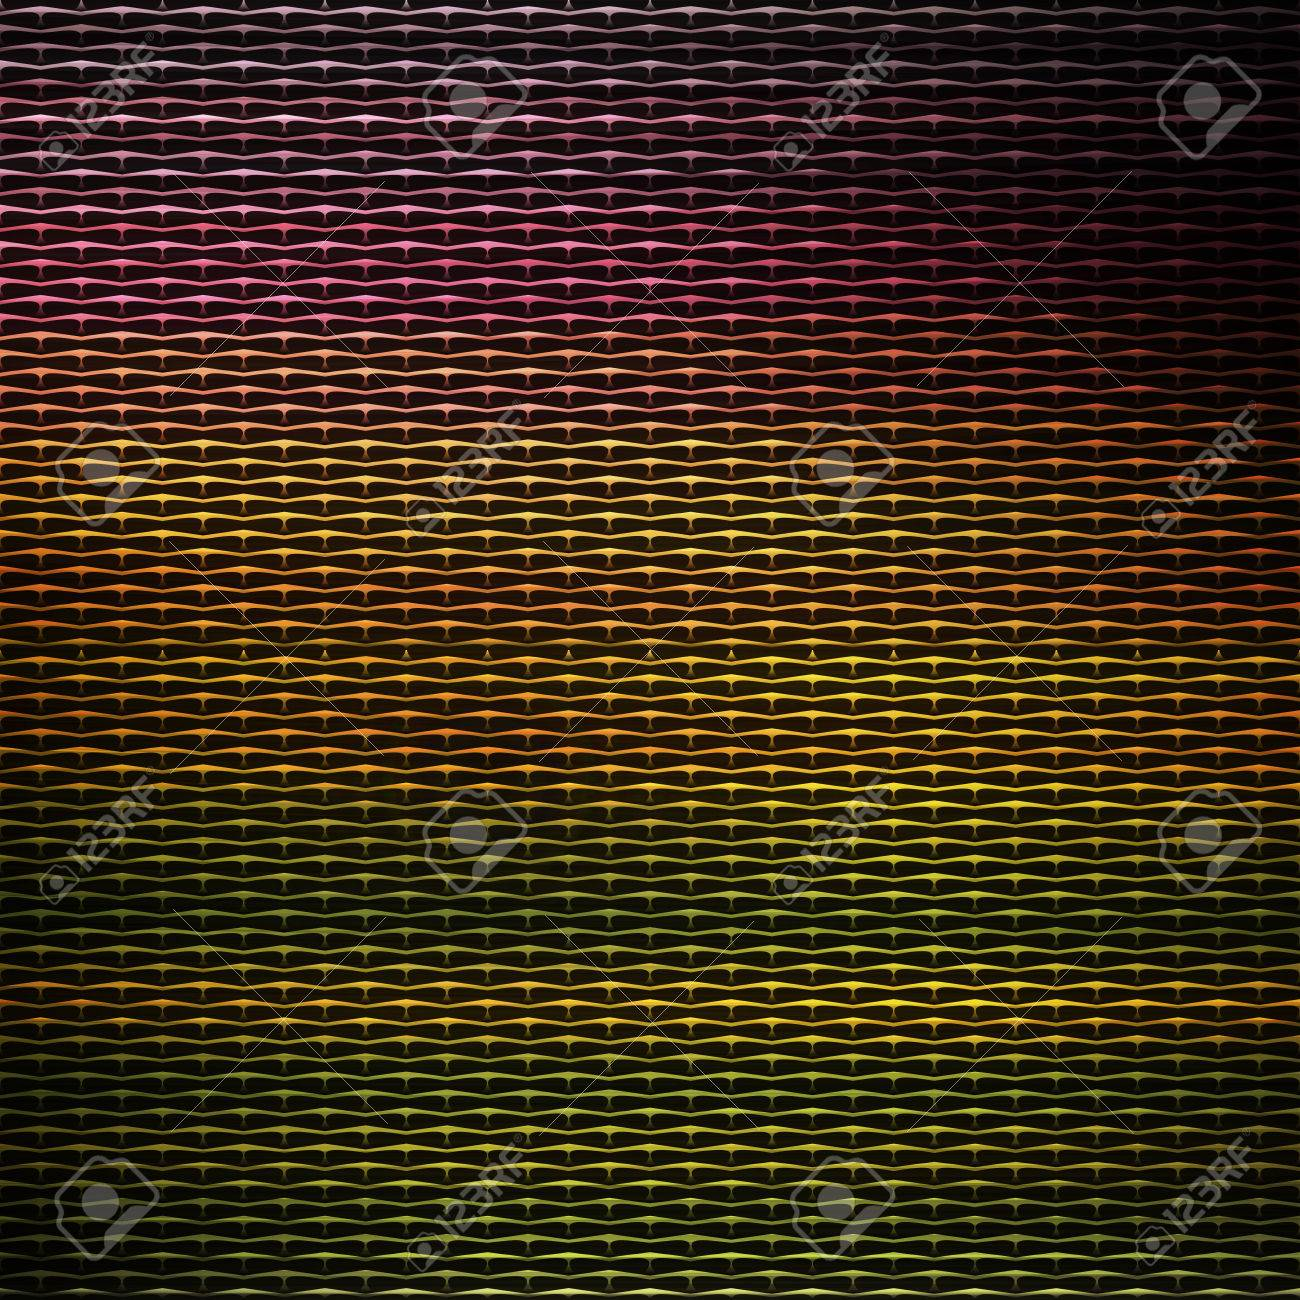 new abstract background with textured metal surface can use like futuristic design Stock Vector - 23848315